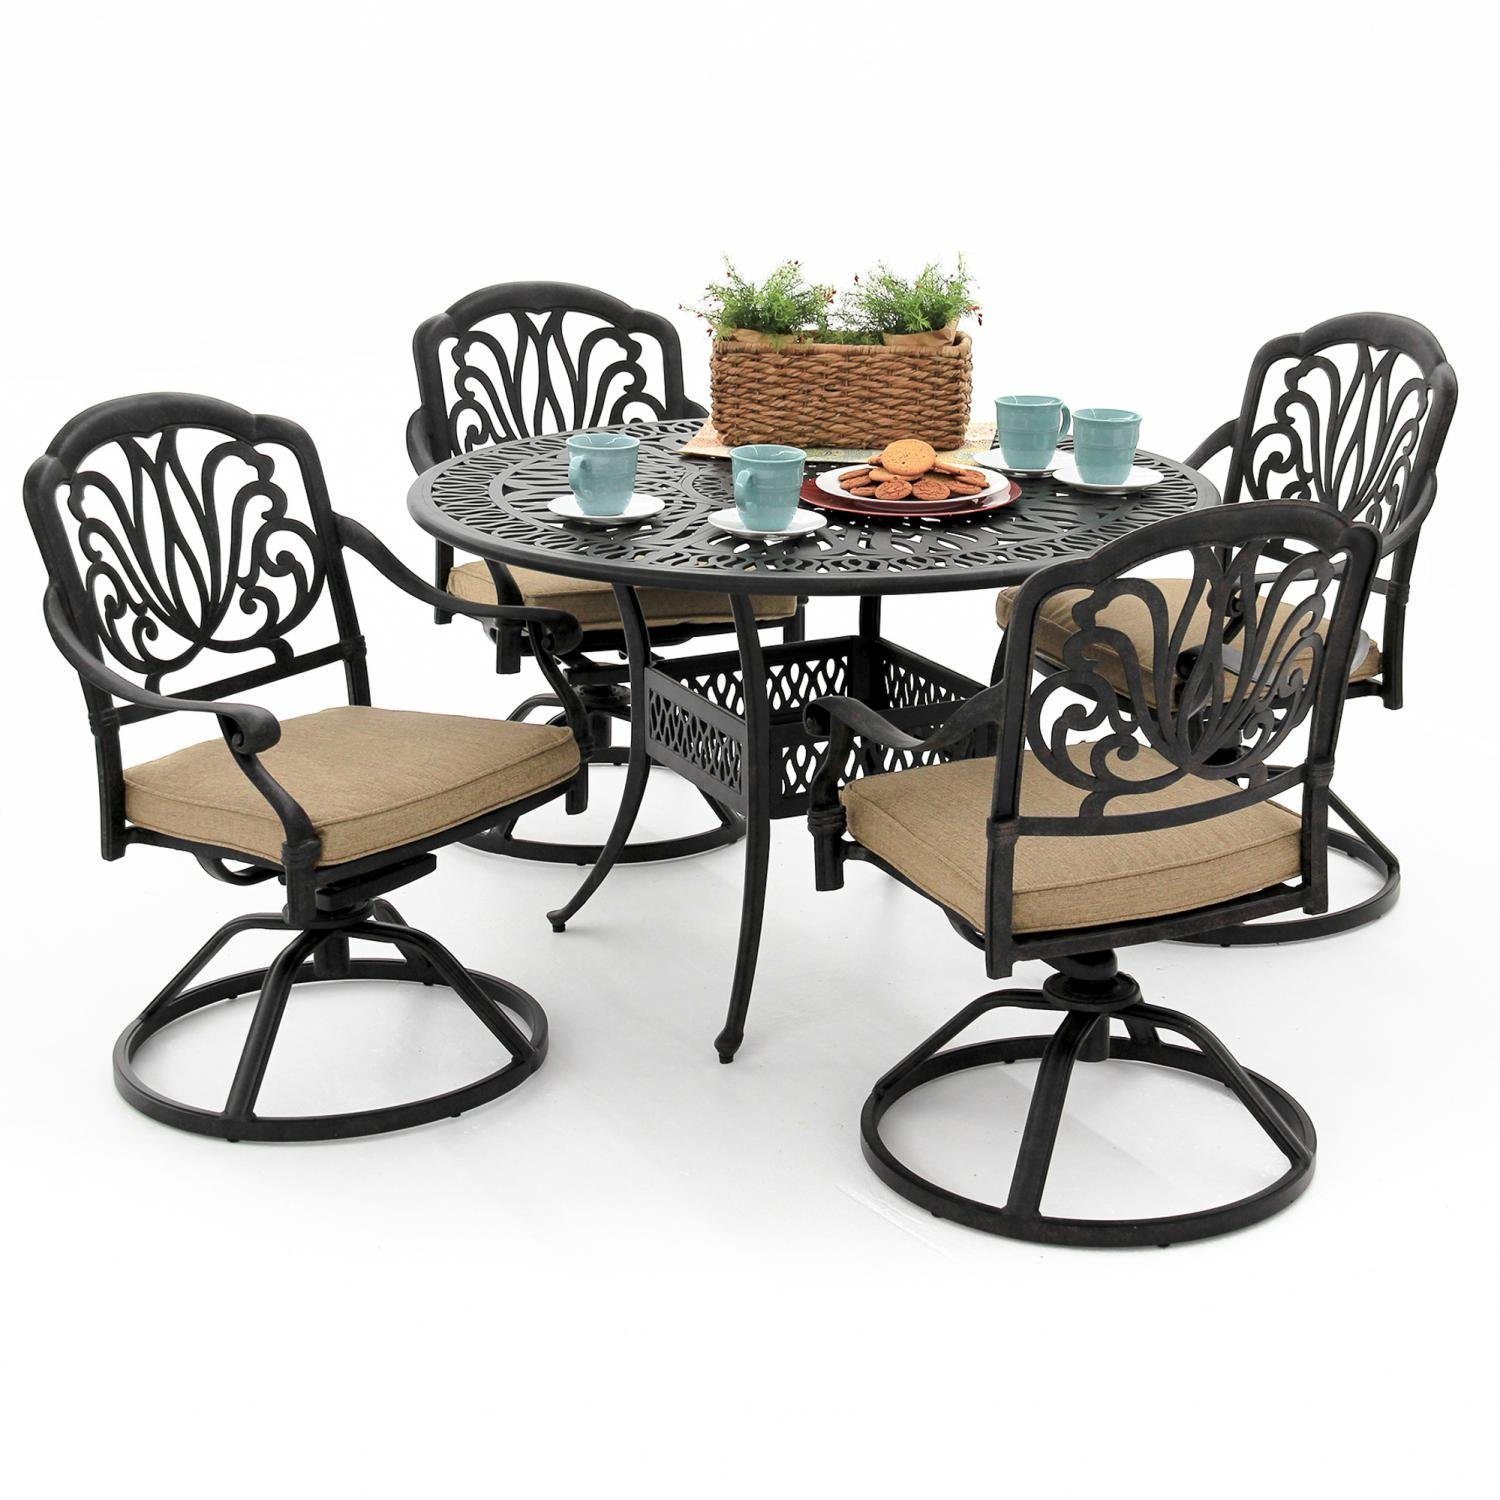 Amazon Rosedown 4 Person Cast Aluminum Patio Dining Set With